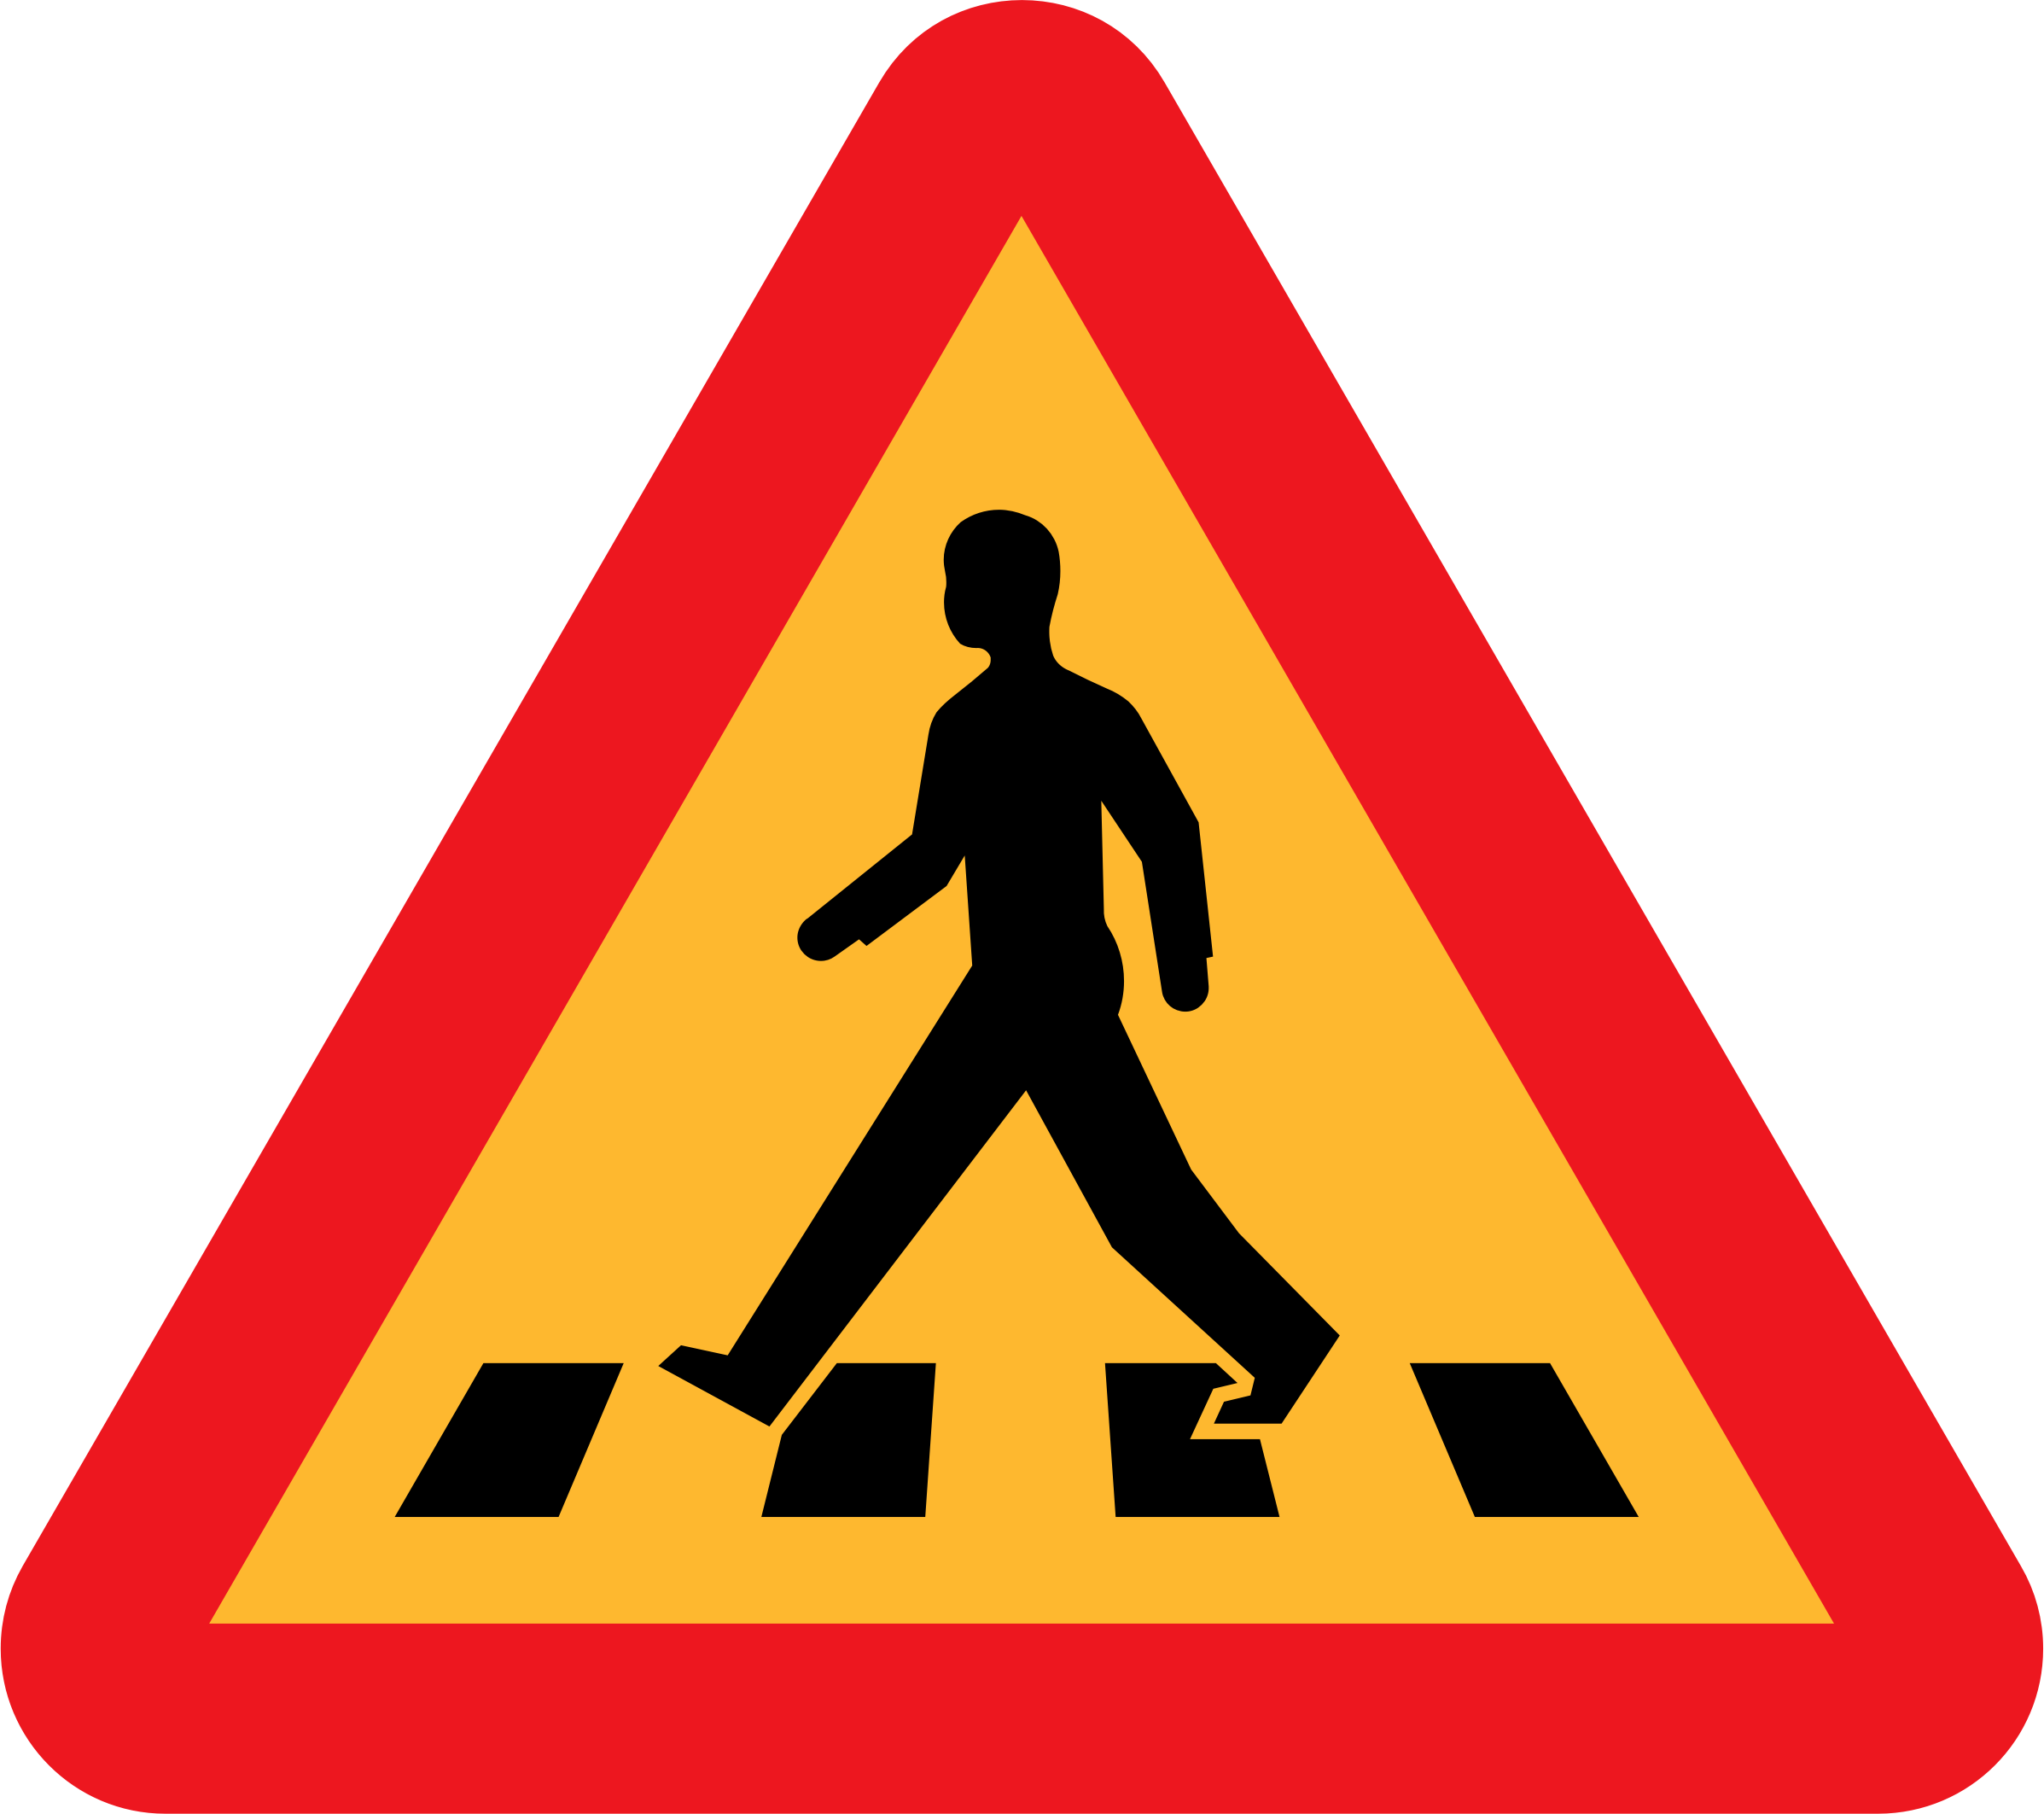 clipart pedestrian crossing sign